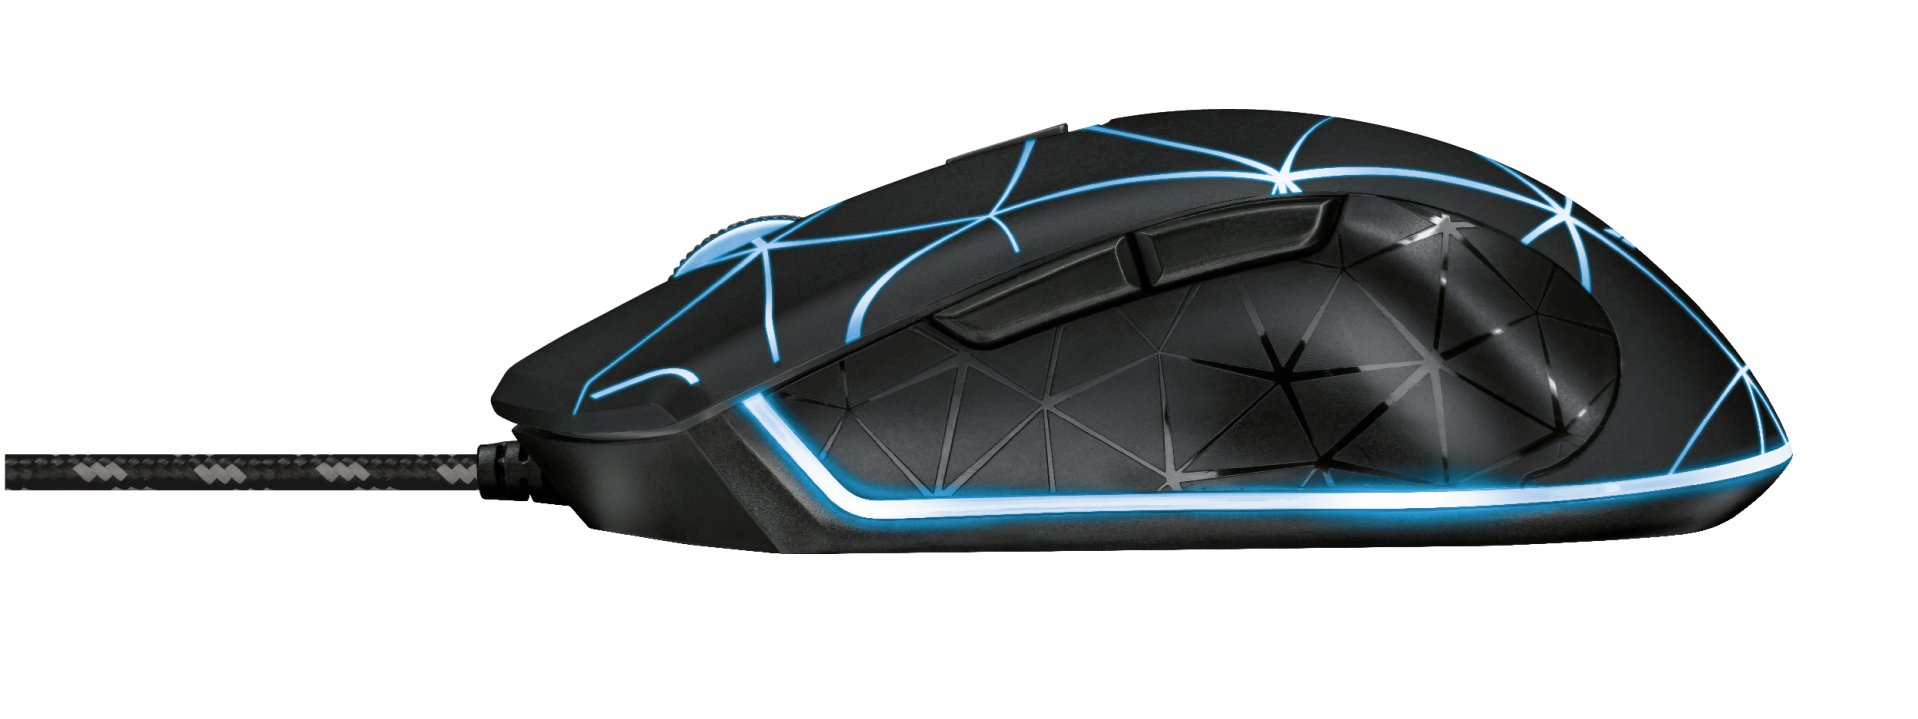 GXT 133 Locx Illuminated Gaming Mouse-Side